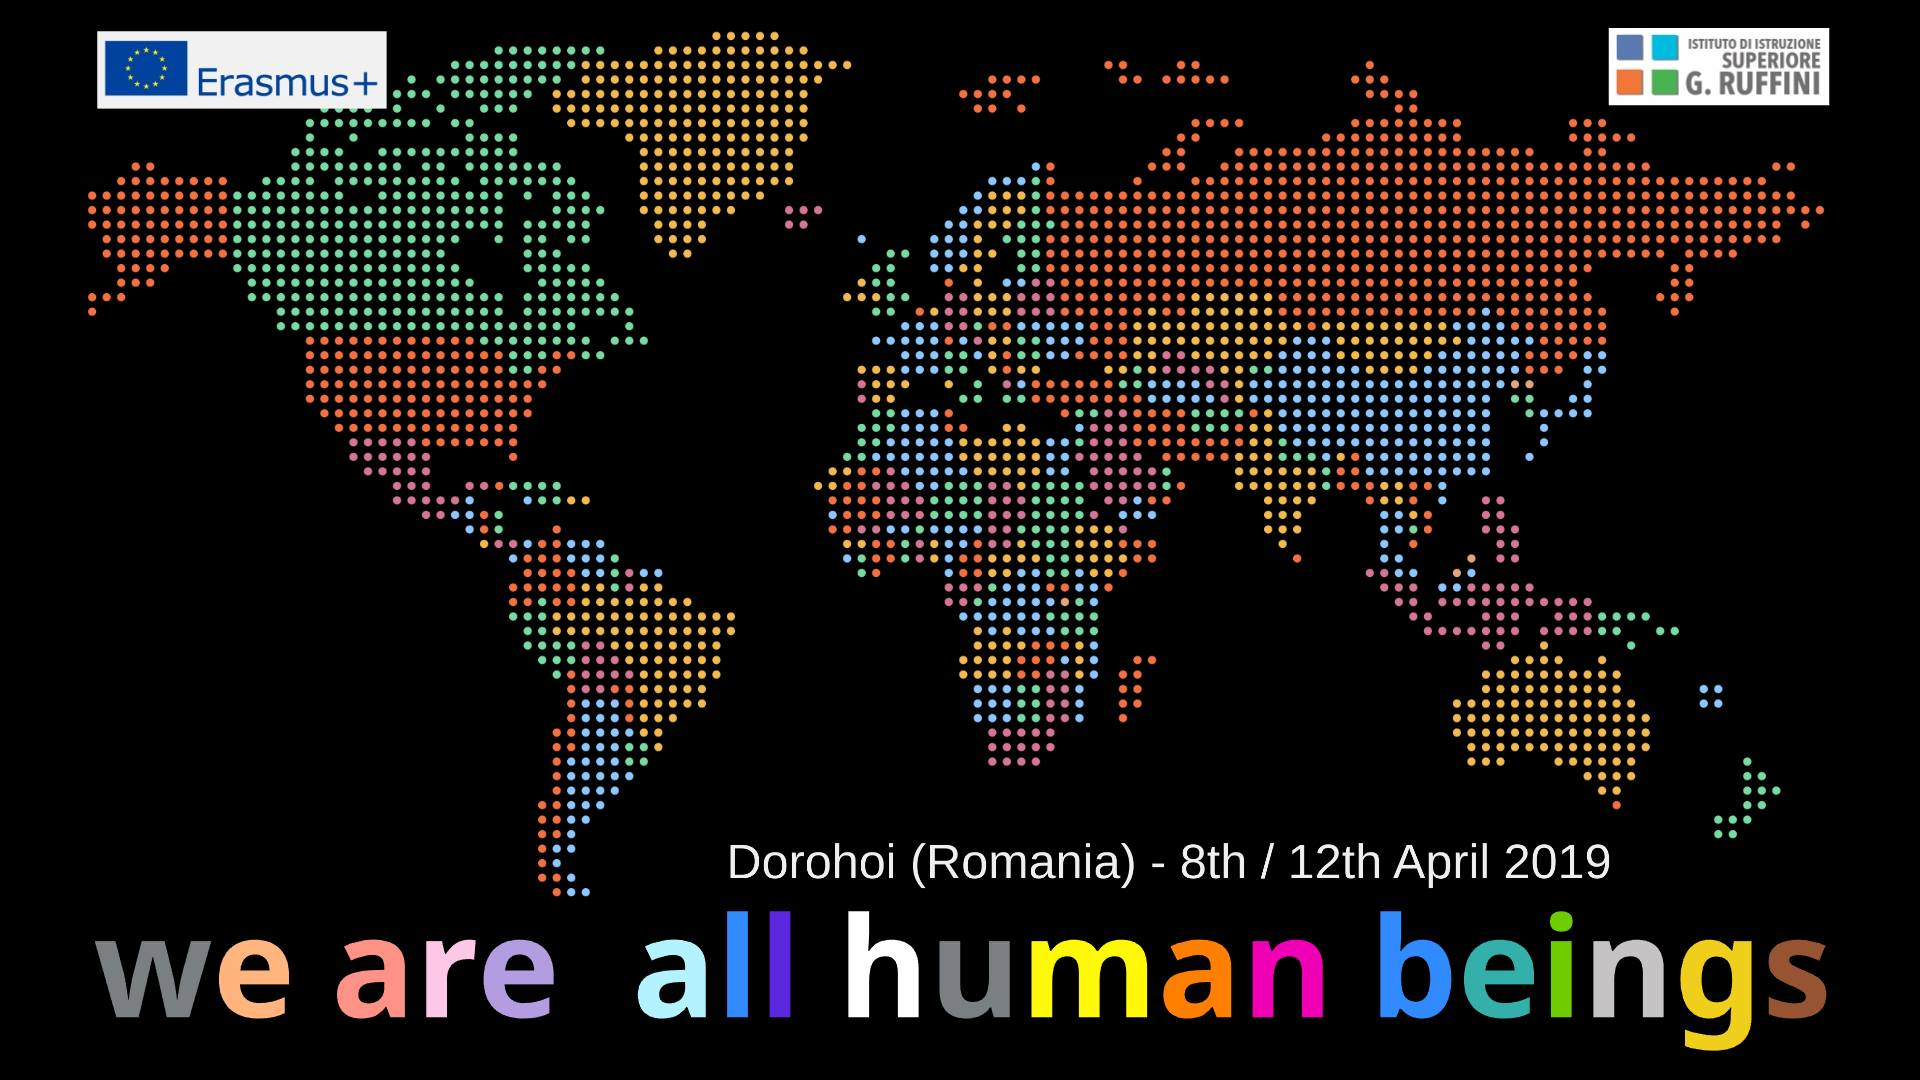 erasmus   project  u201cwe are all human beings u201d  u2013 romania